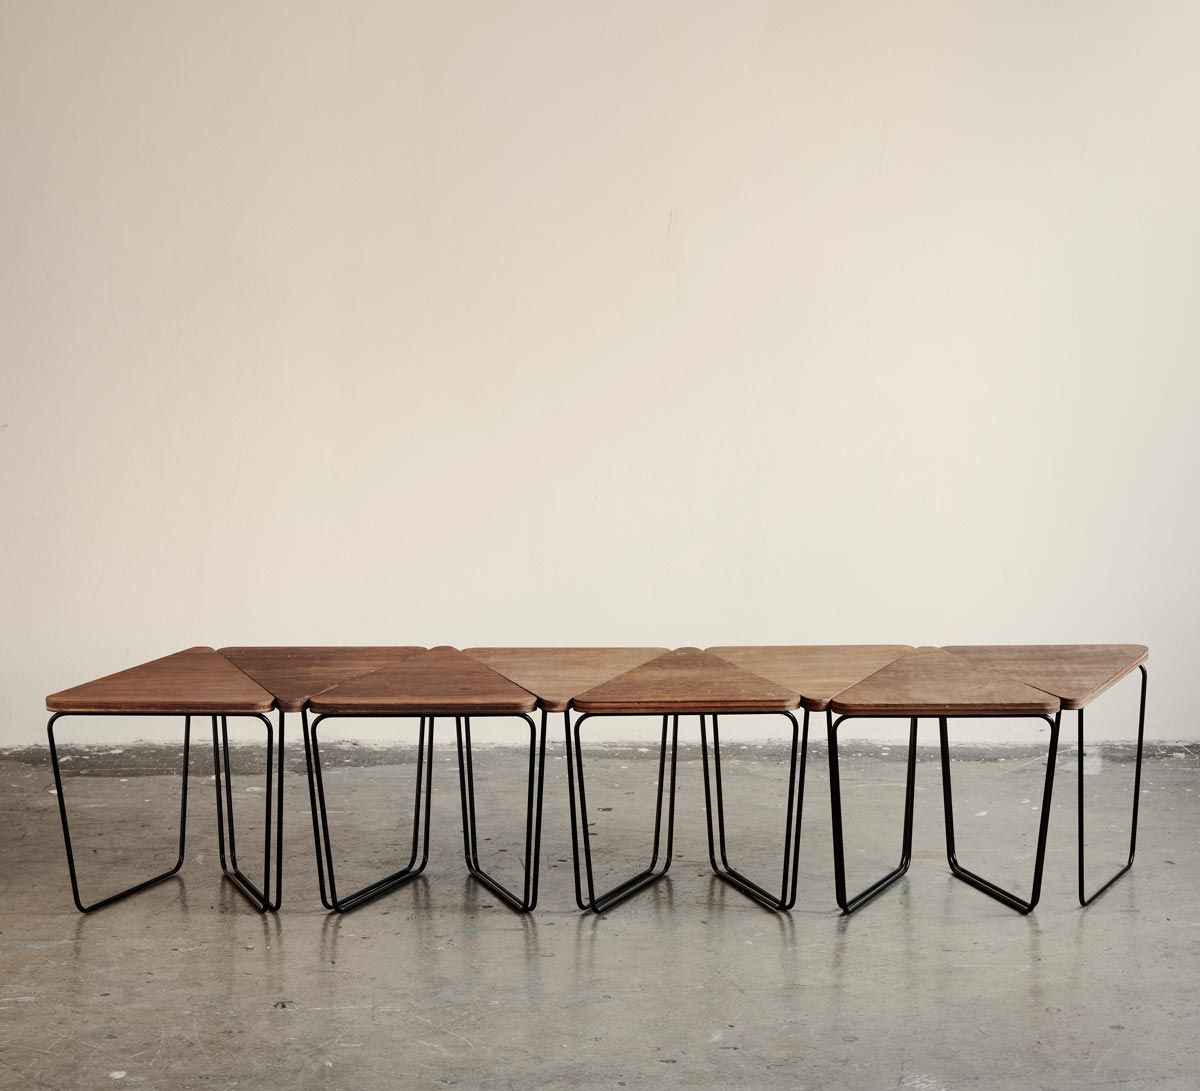 Exceptional The Fractal Modular Table By Sarah Gibson And Nicholas Karlovasitis Of  Design By Them Is A Modular Setting, Using Pattern And Repetition.